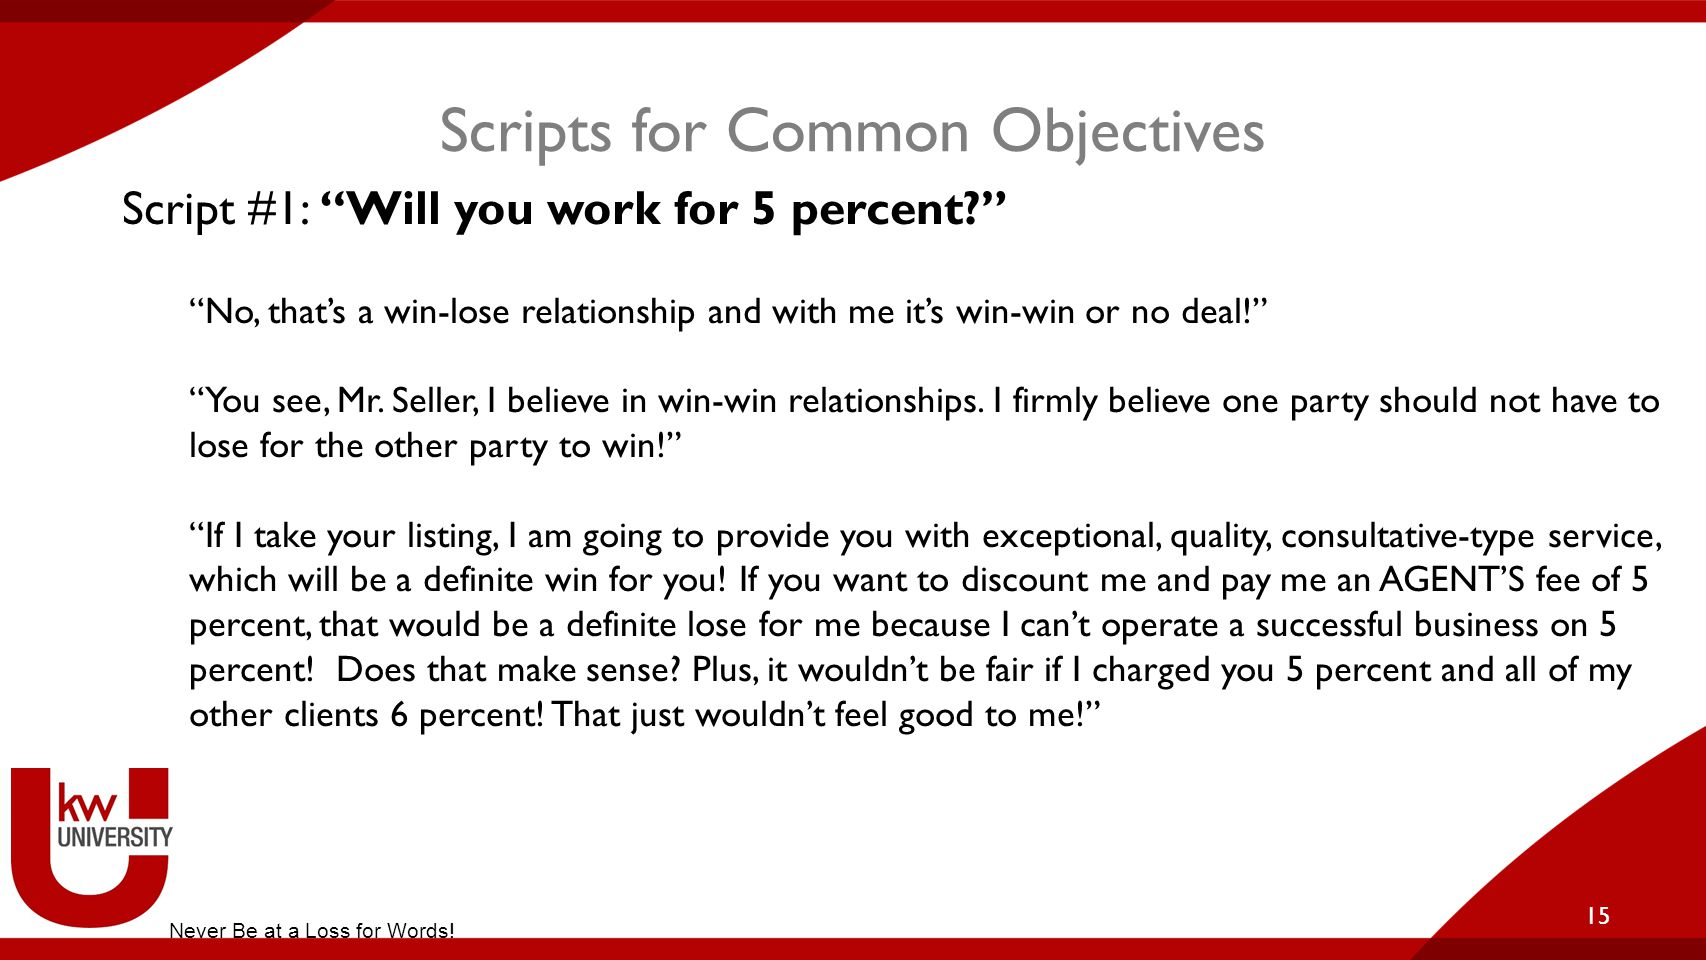 Scripts for Common Objectives